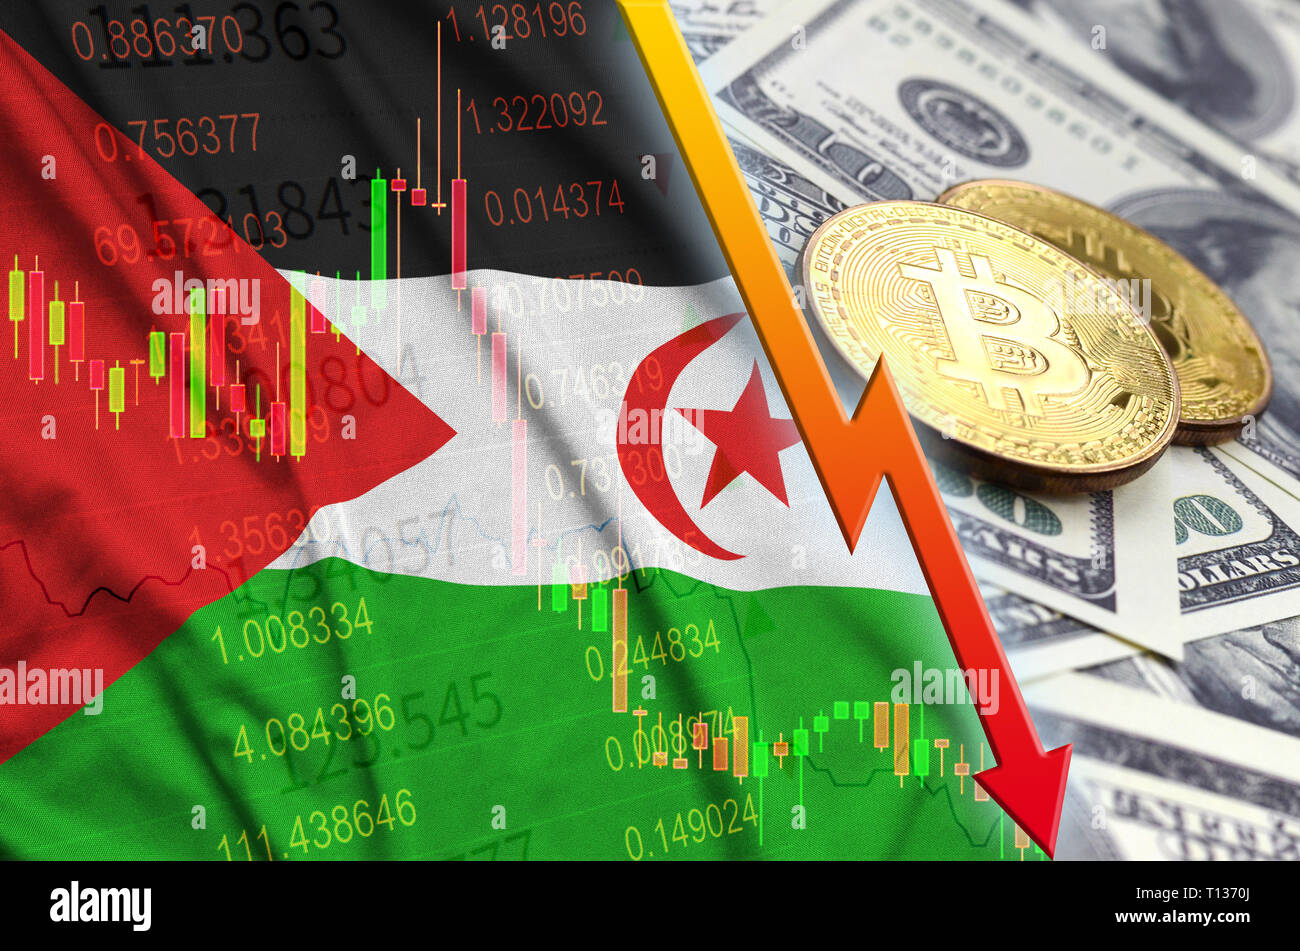 Western Sahara flag and cryptocurrency falling trend with two bitcoins on dollar bills. Concept of depreciation Bitcoin in price against the dollar - Stock Image